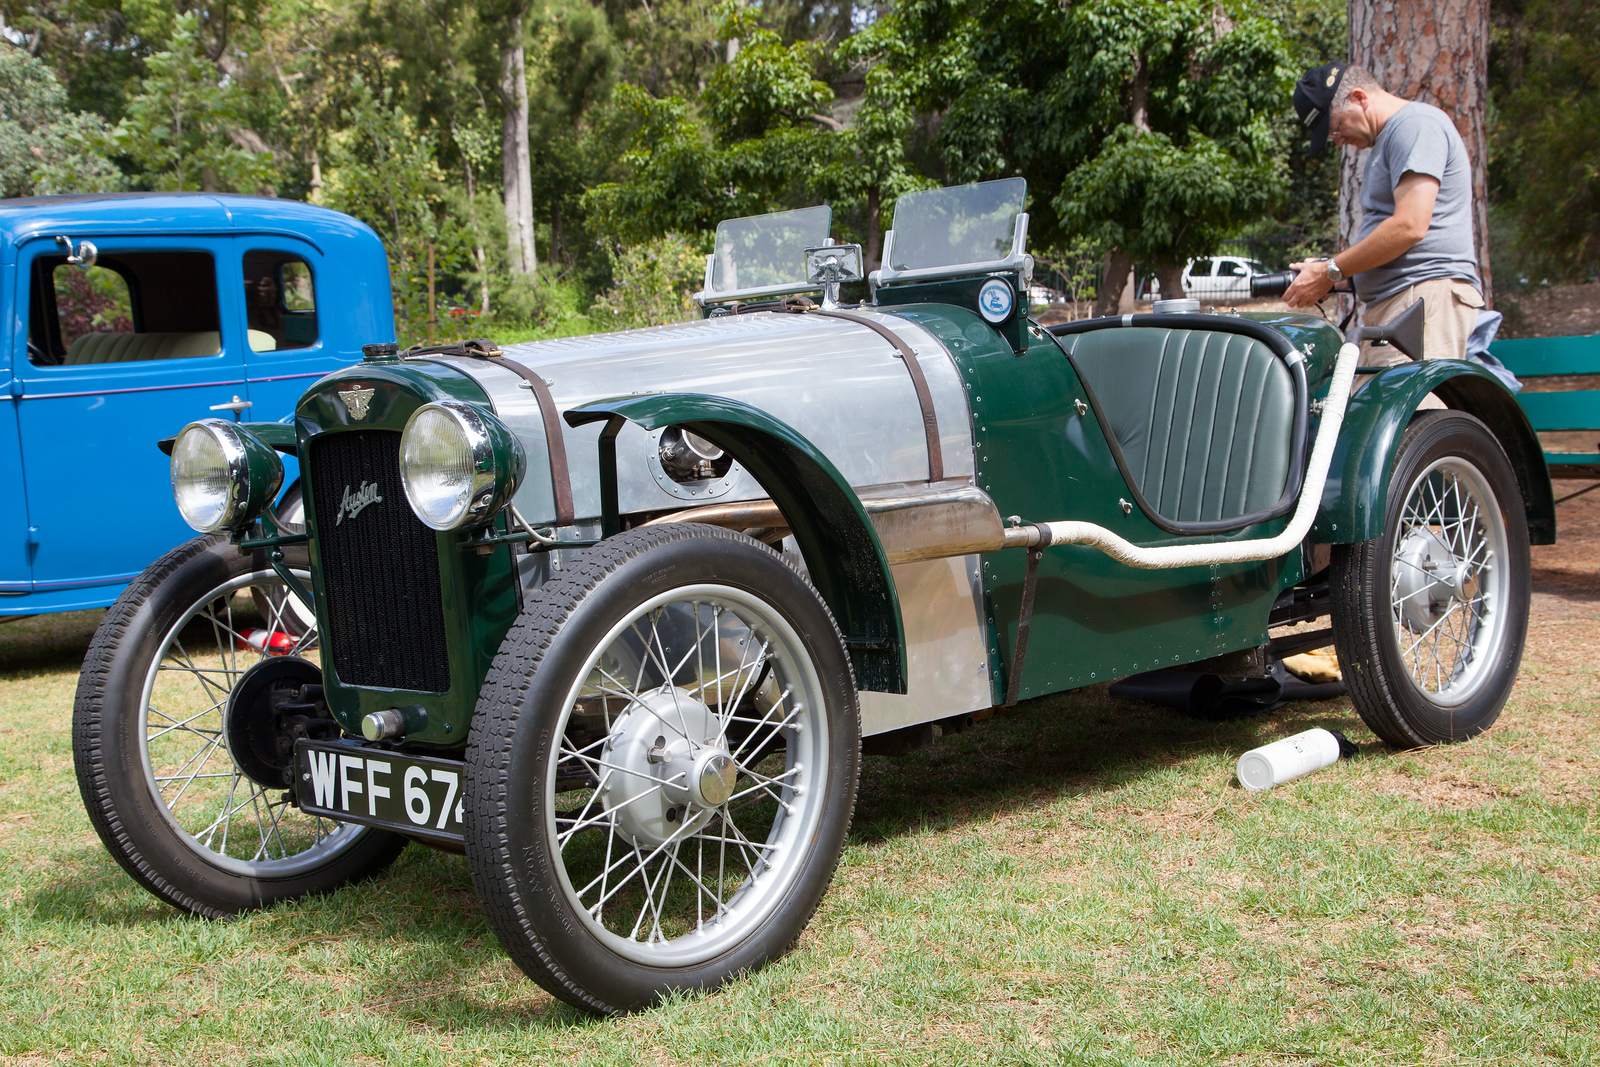 1934 Austin Seven Special, owned by Dennis Sonius